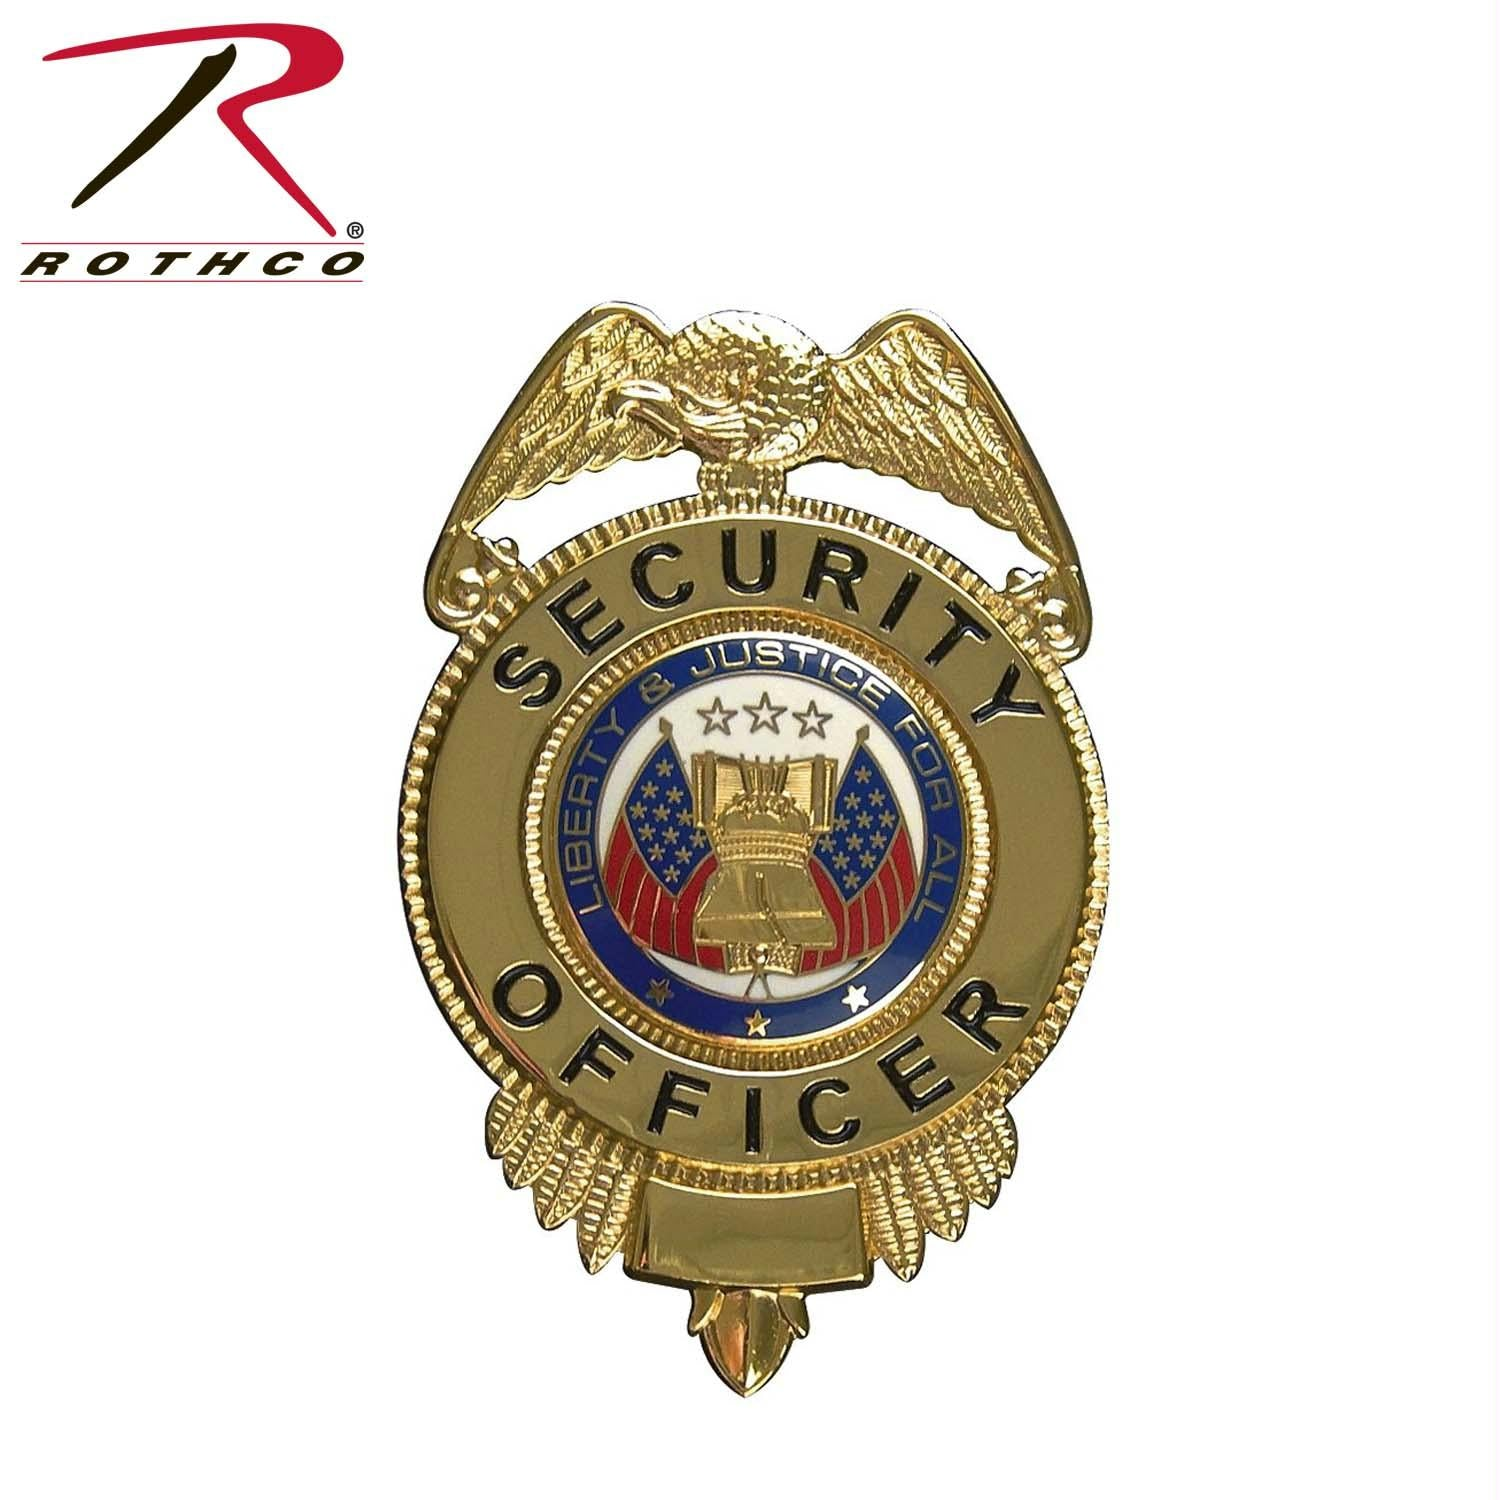 Rothco Security Officer Badge w/ Flags